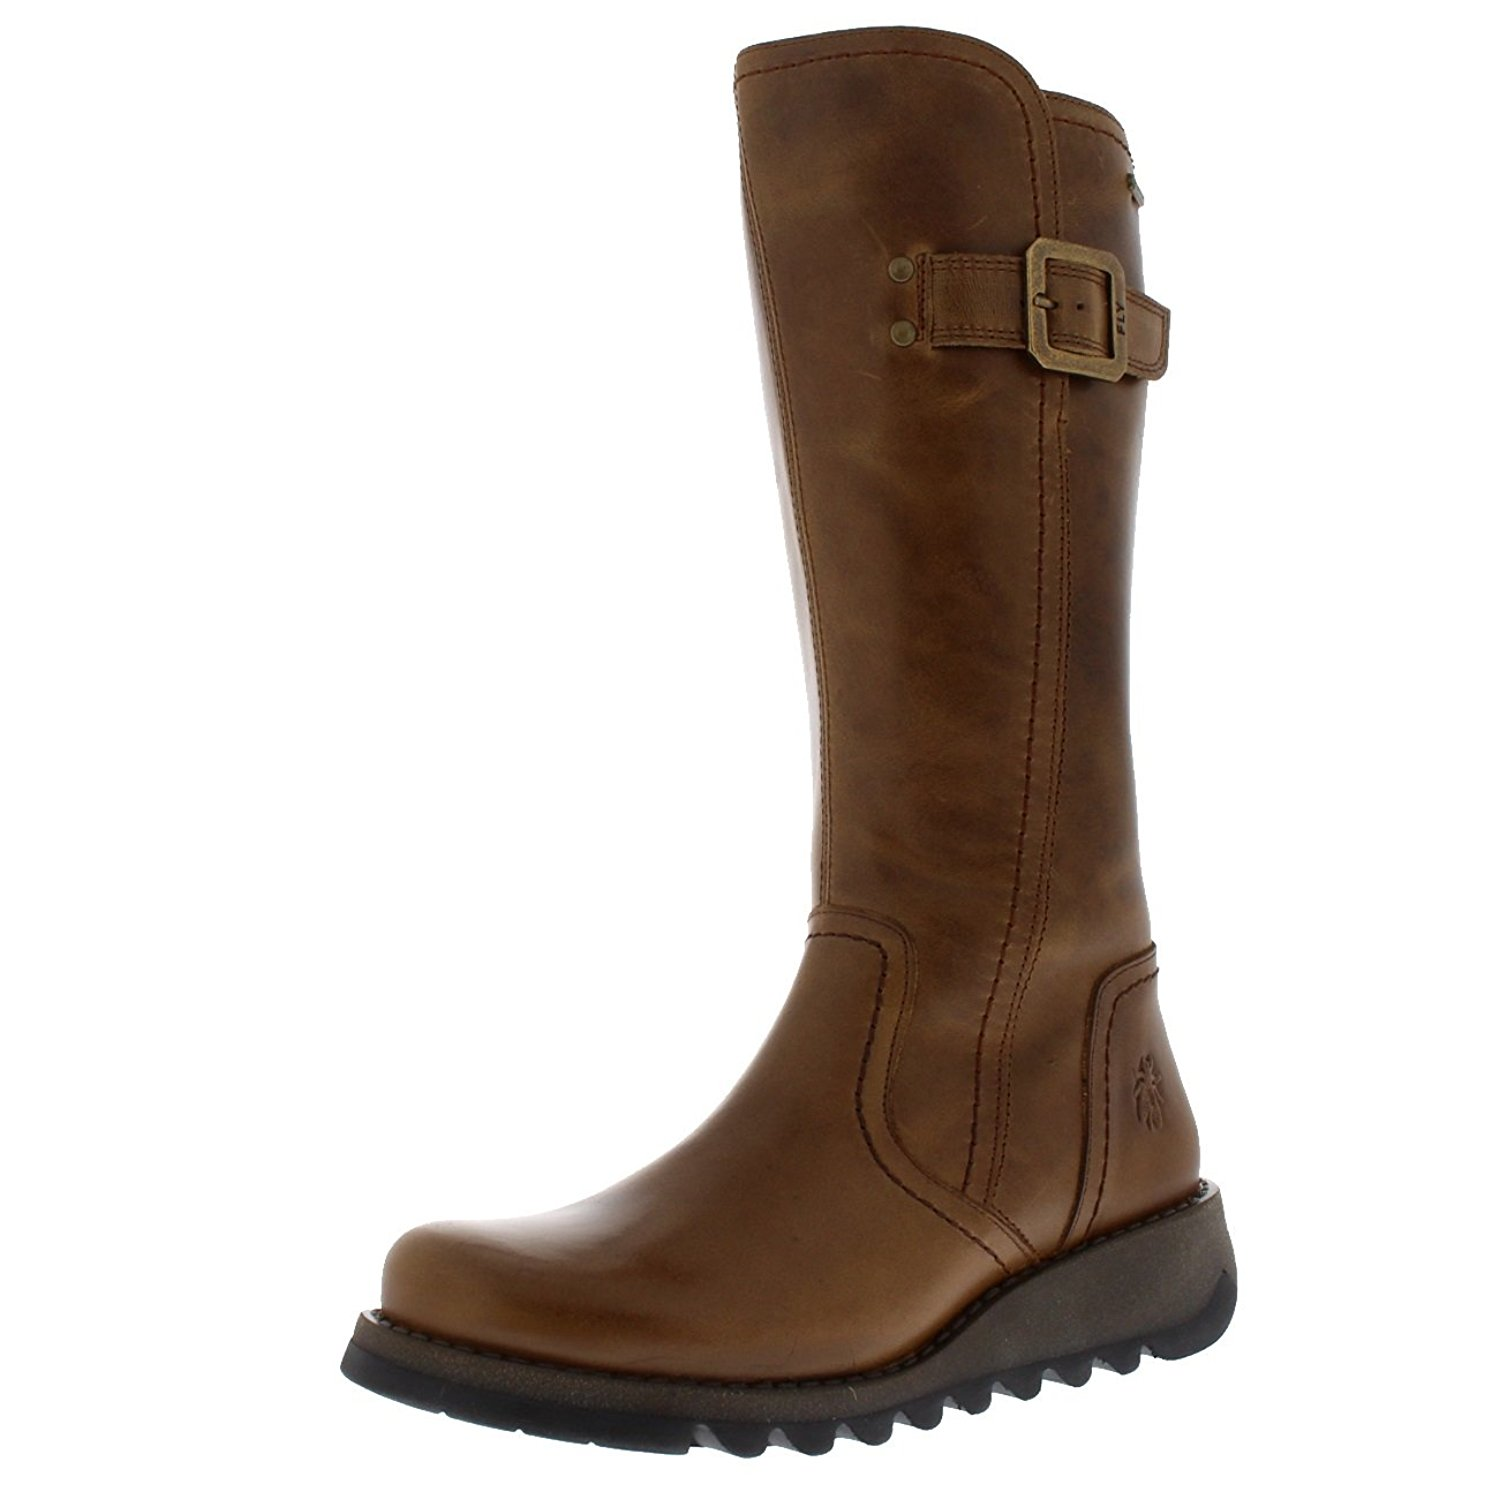 987c1c5d0de4 Get Quotations · FLY London Womens Shap Camel Winter Wedge Heel Leather  Knee High Boots